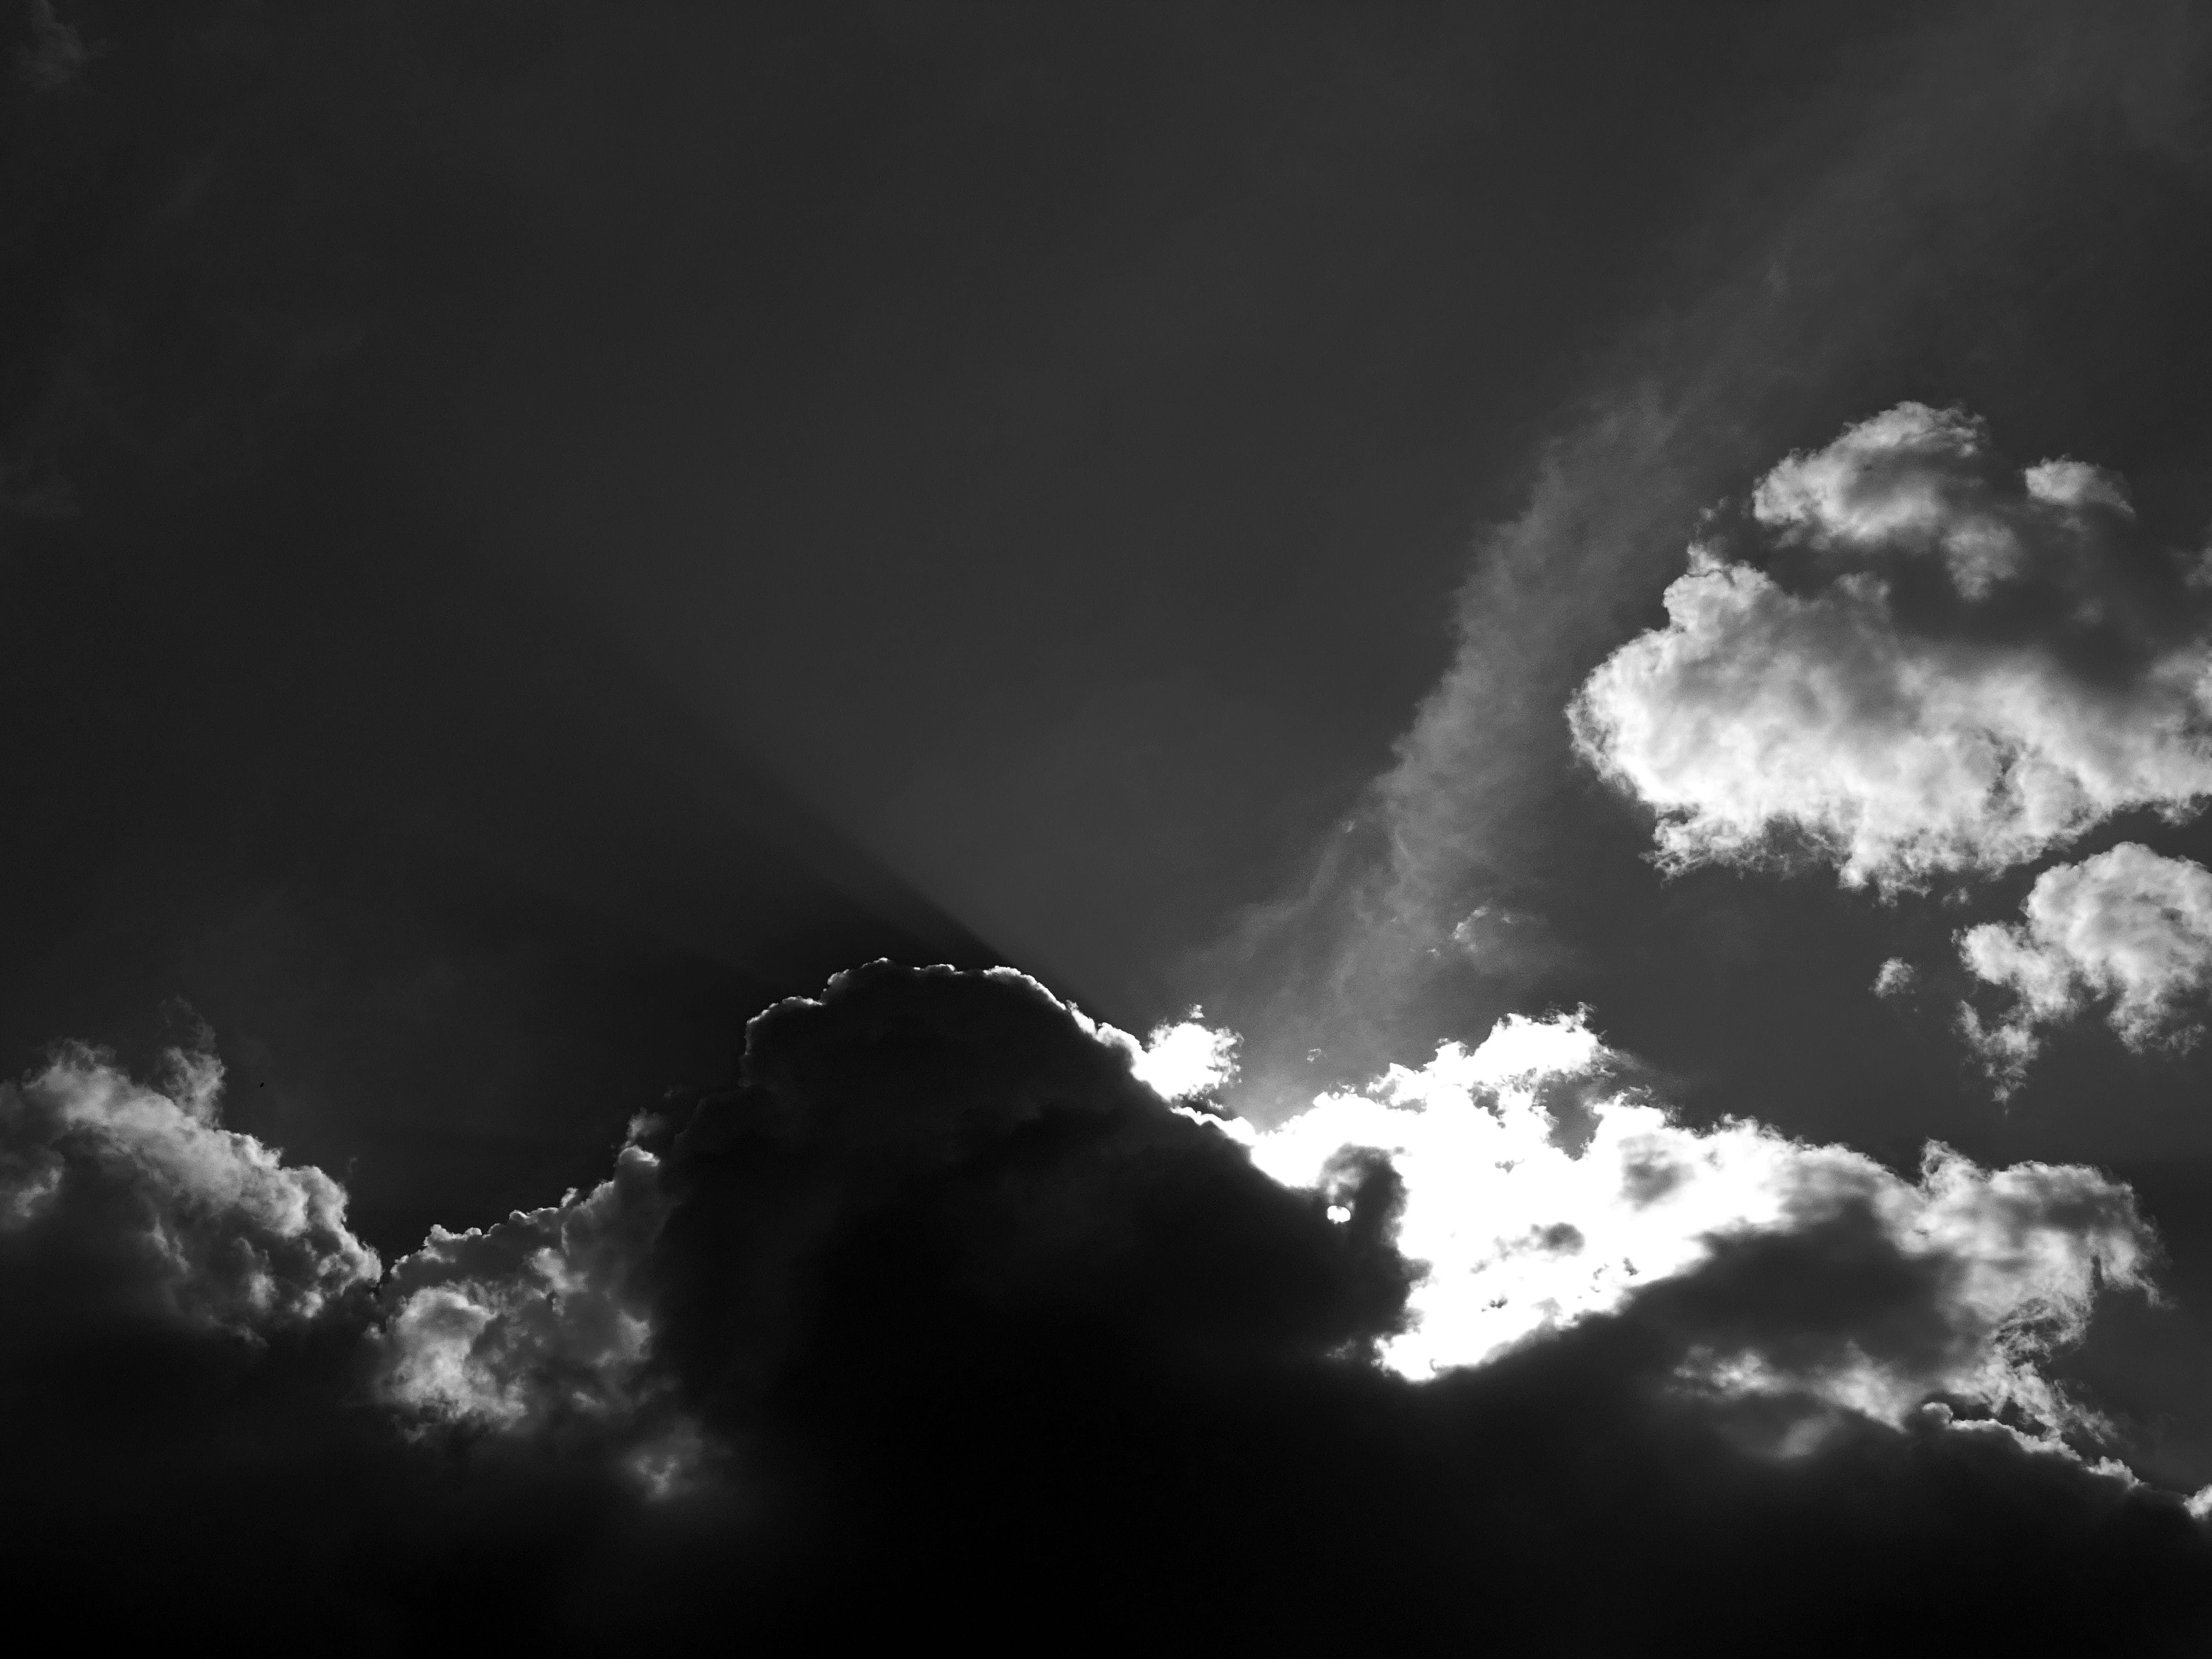 Black and White Image of Clouds